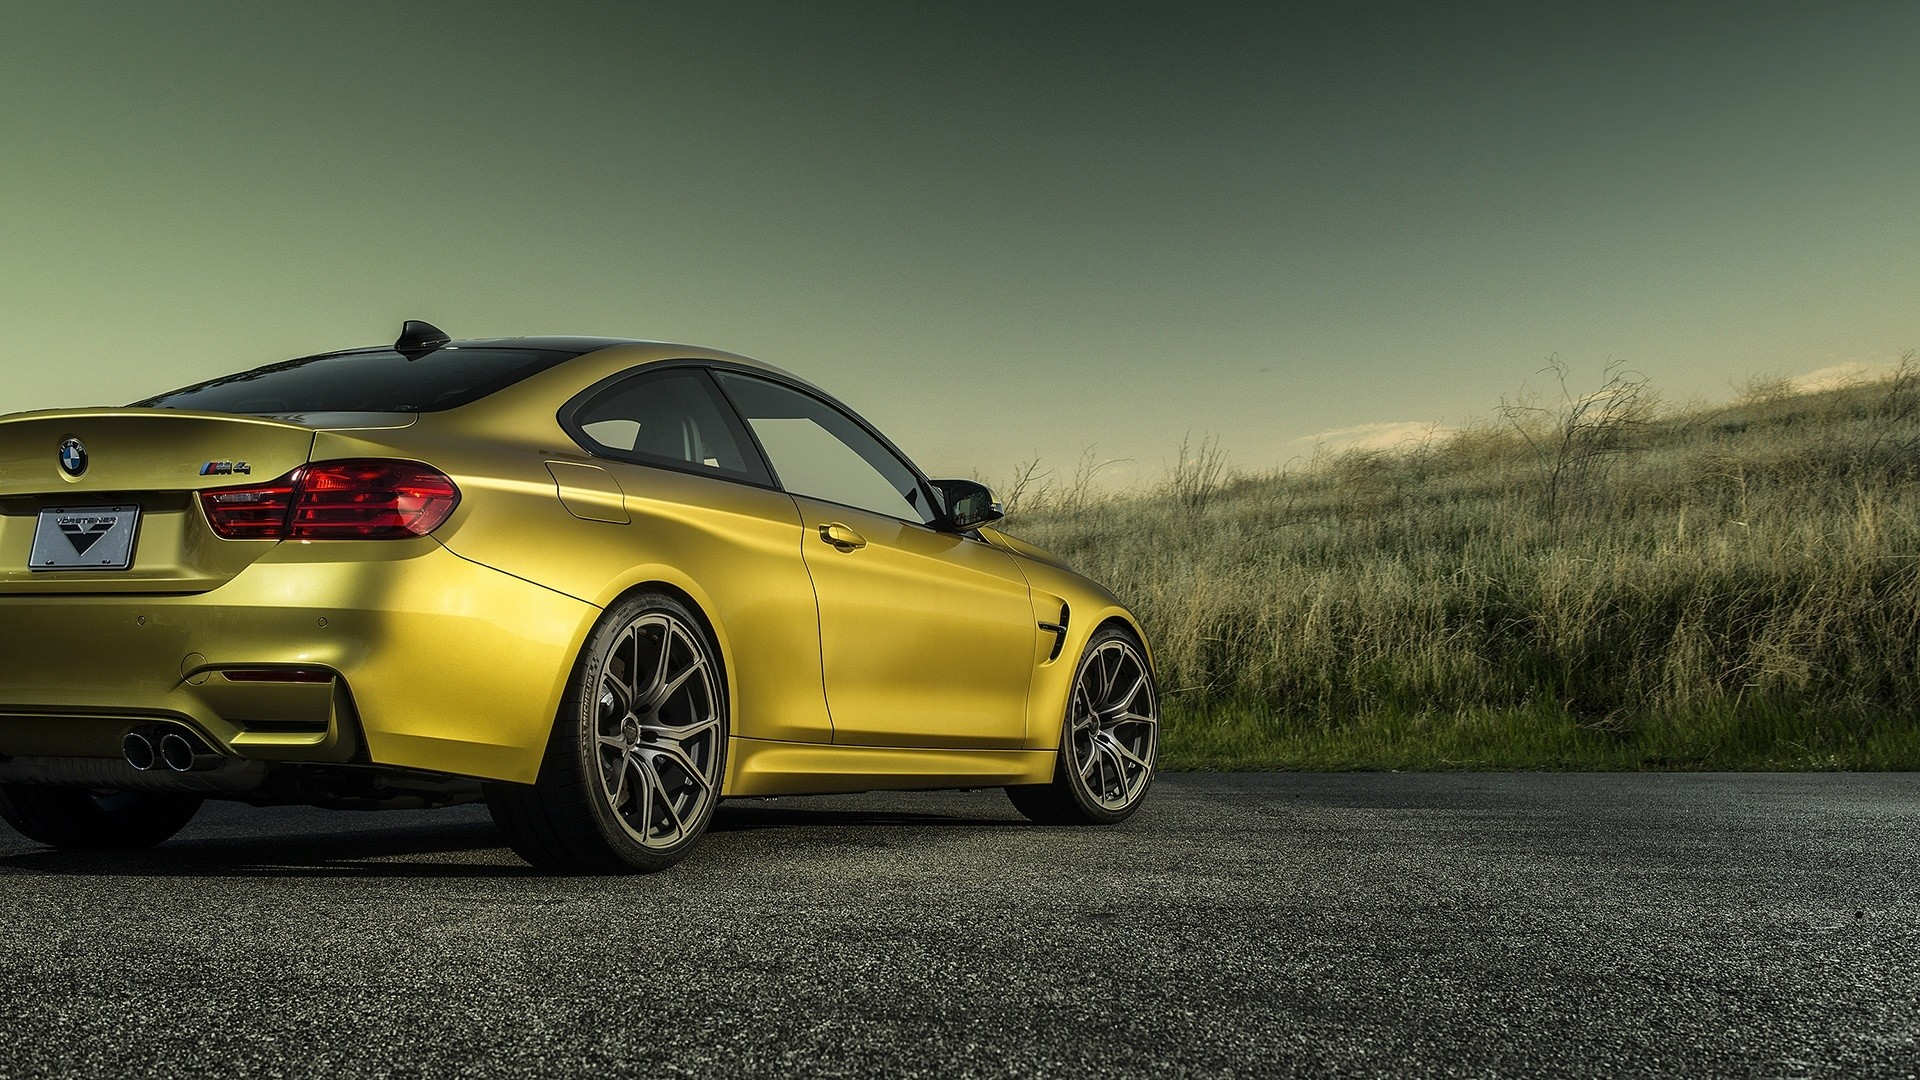 1920x1080 BMW ///M images BMW M4 F82 (Golden) HD wallpaper and background photos